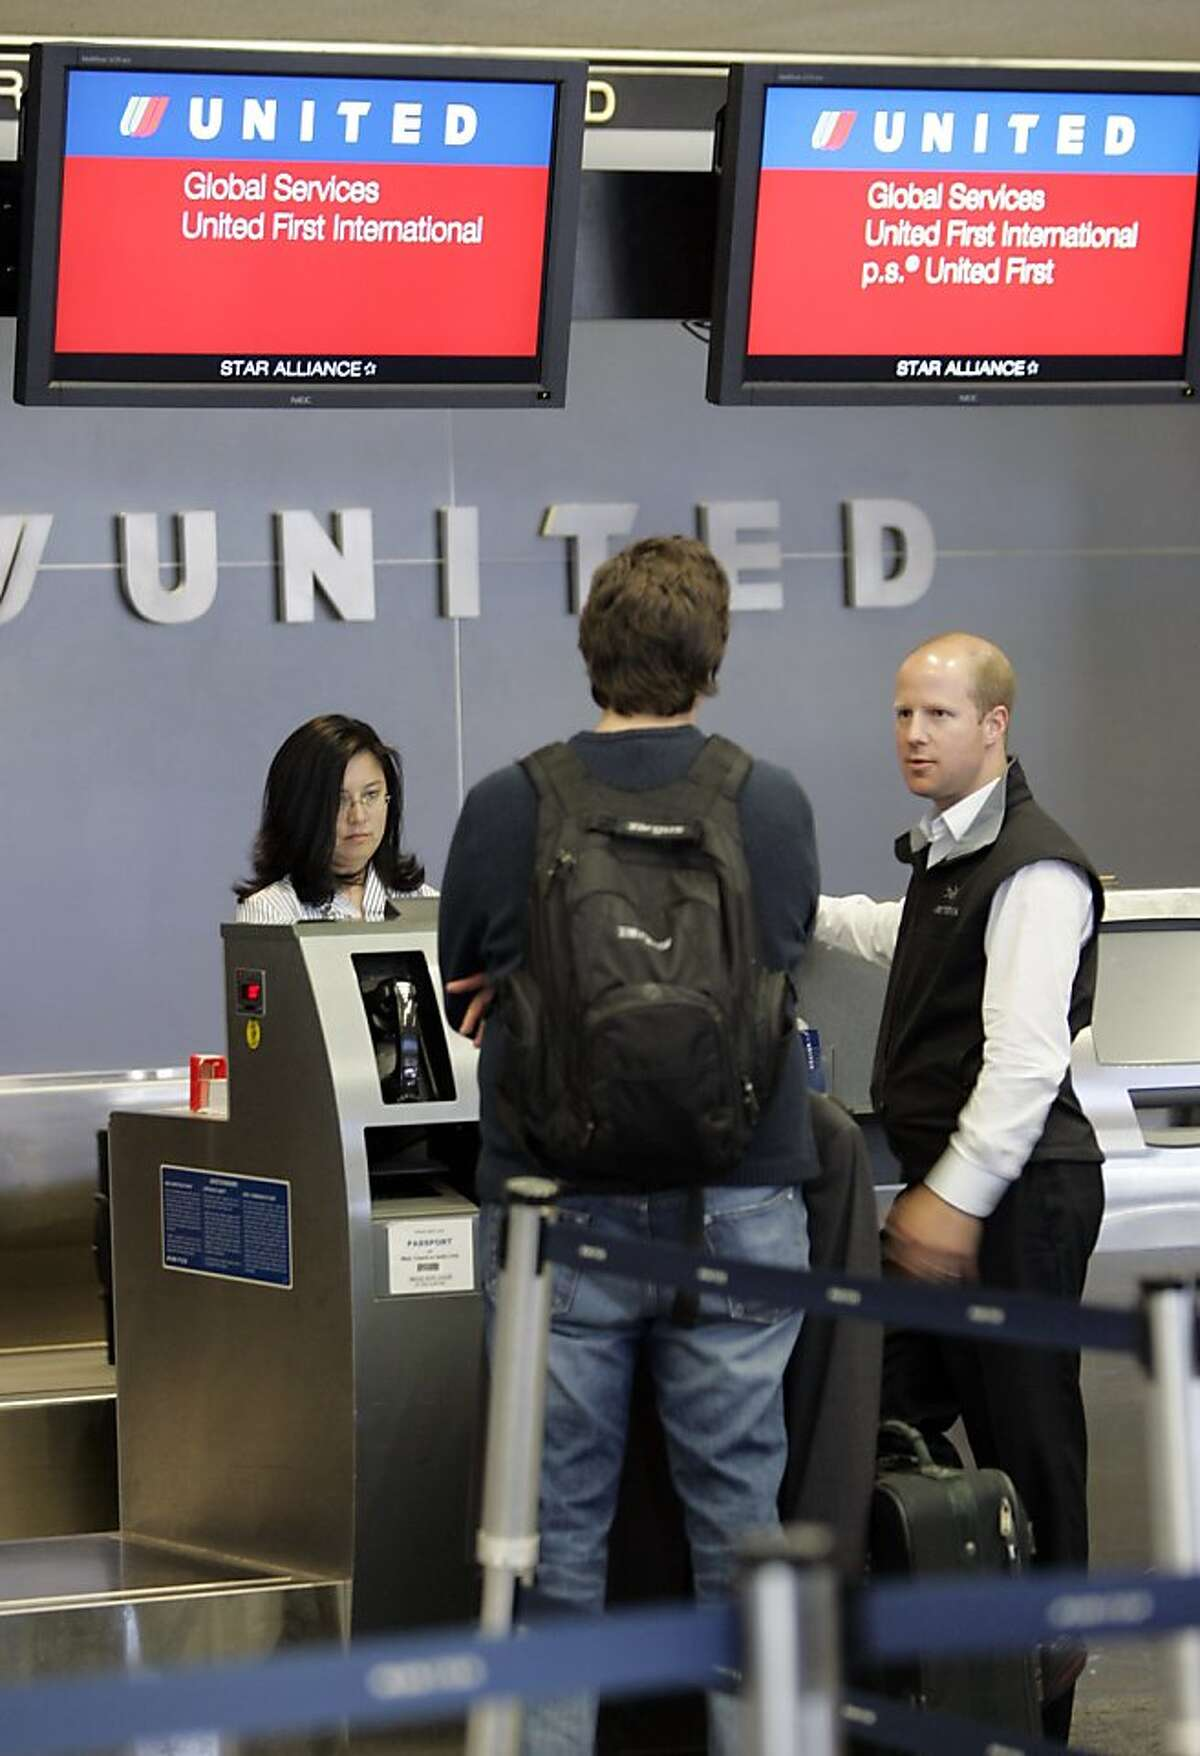 **FILE** In this June 4, 2008 file photo, United Airlines first class passengers check in at San Francisco International Airport in San Francisco. Continental Airlines says it is forming an alliance with United Airlines to link their networks and services worldwide, hoping to offset rising fuel costs. (AP Photo/Paul Sakuma, file)